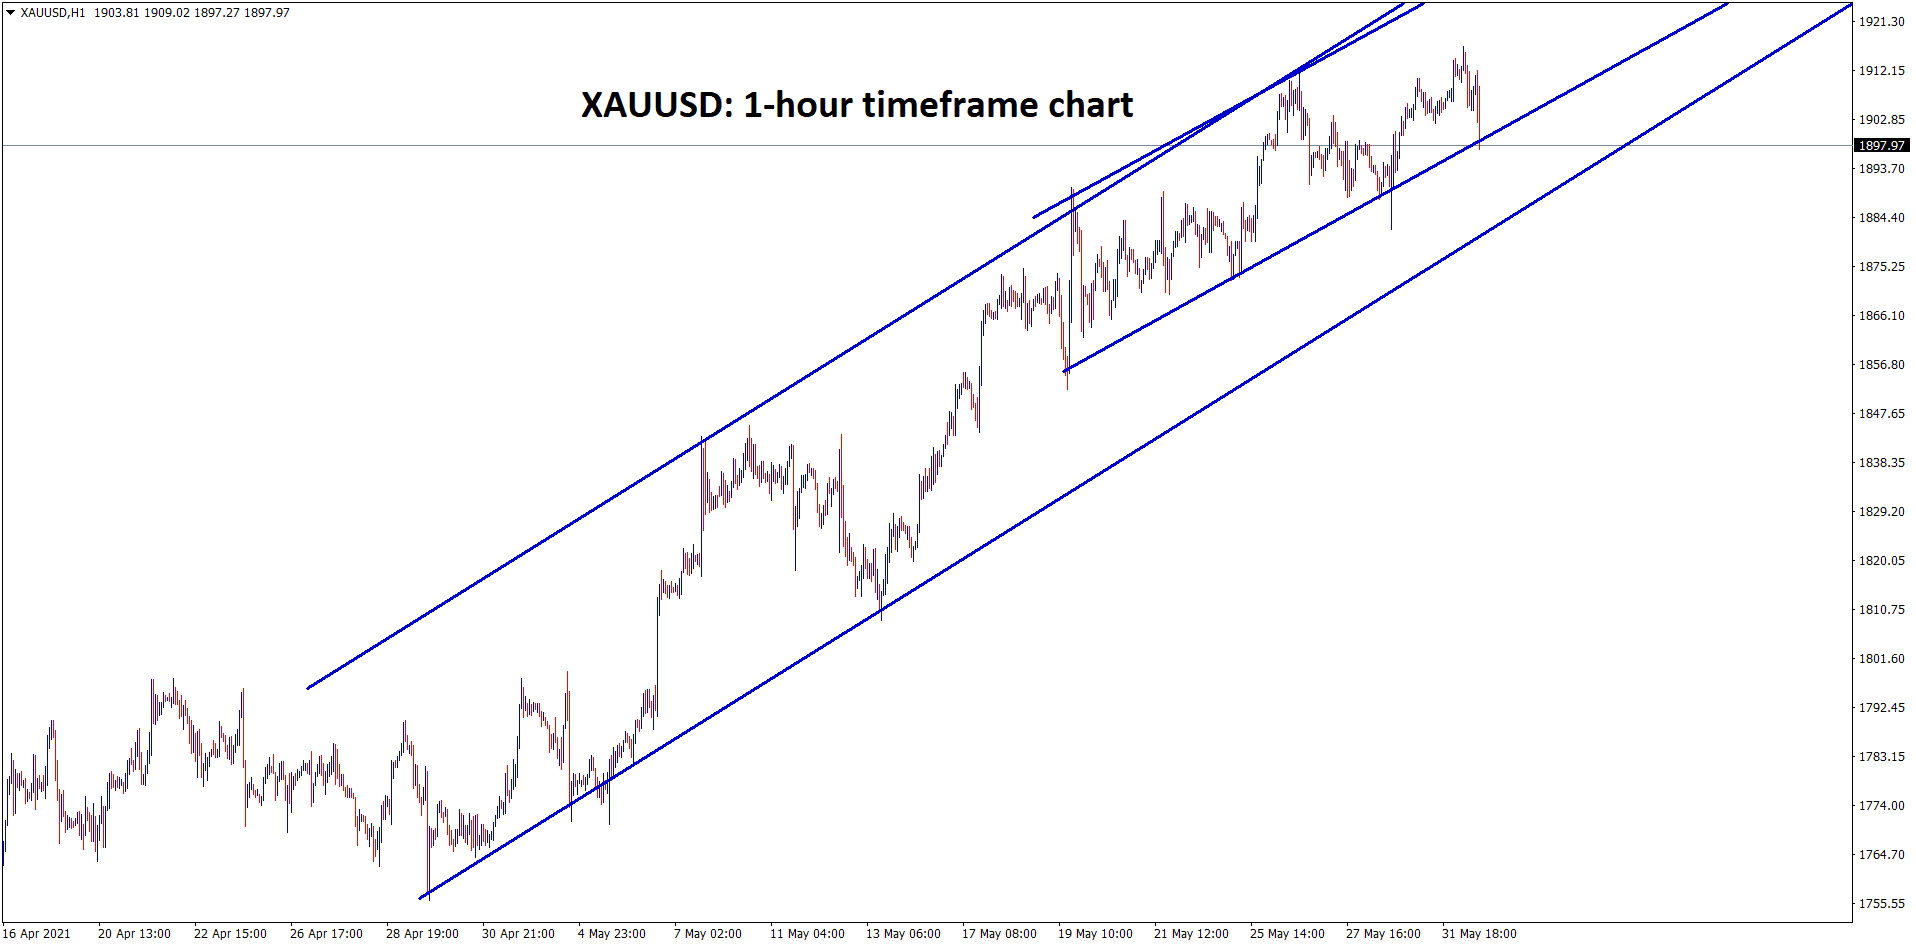 Gold XAUUSD is making a correction from the top resistance zone